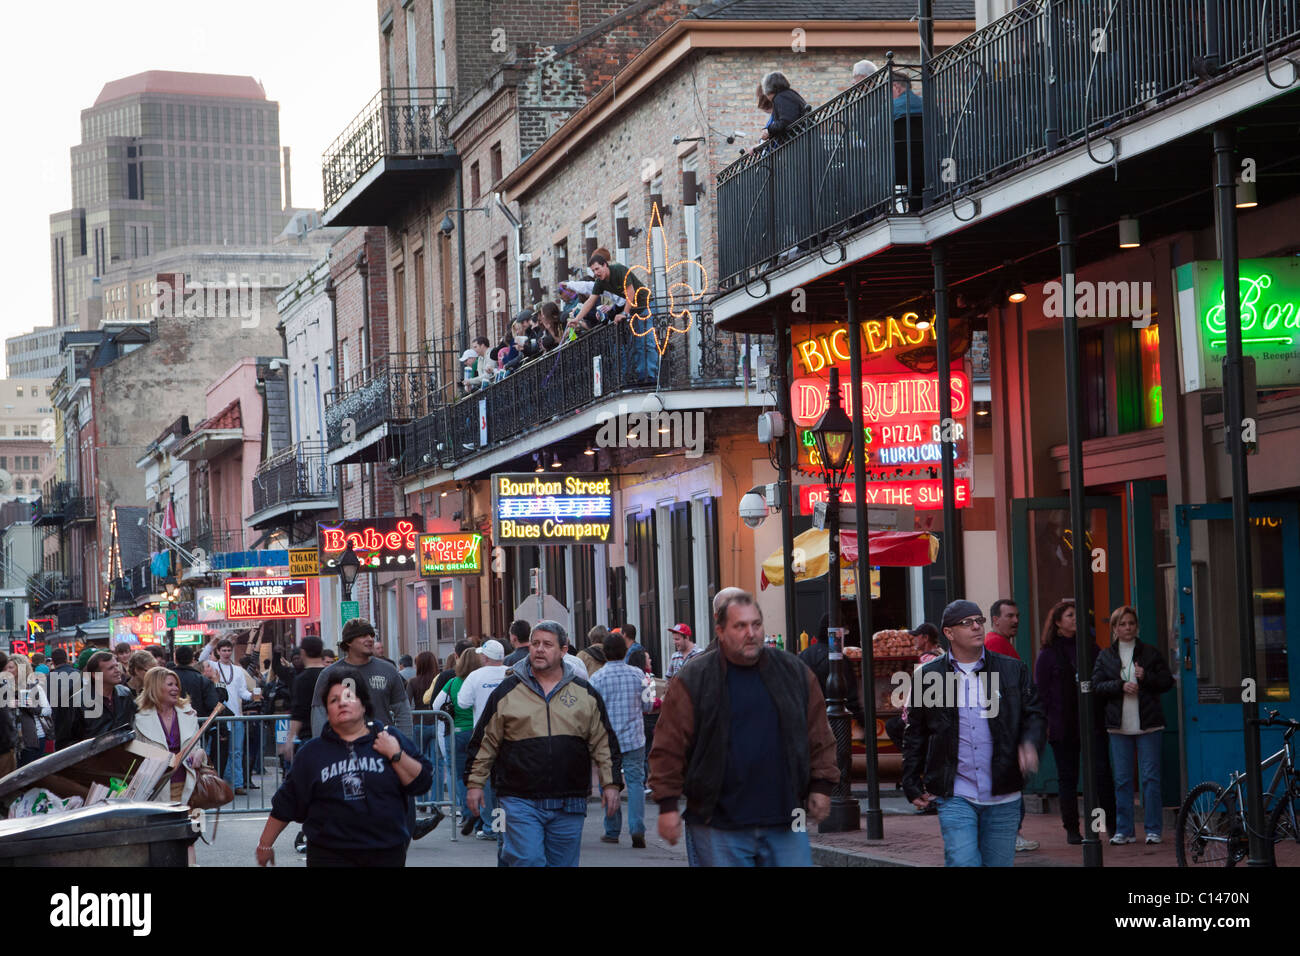 People cruising by neon signs of bars and nightclubs on Bourbon Street at night in New Orleans - Stock Image